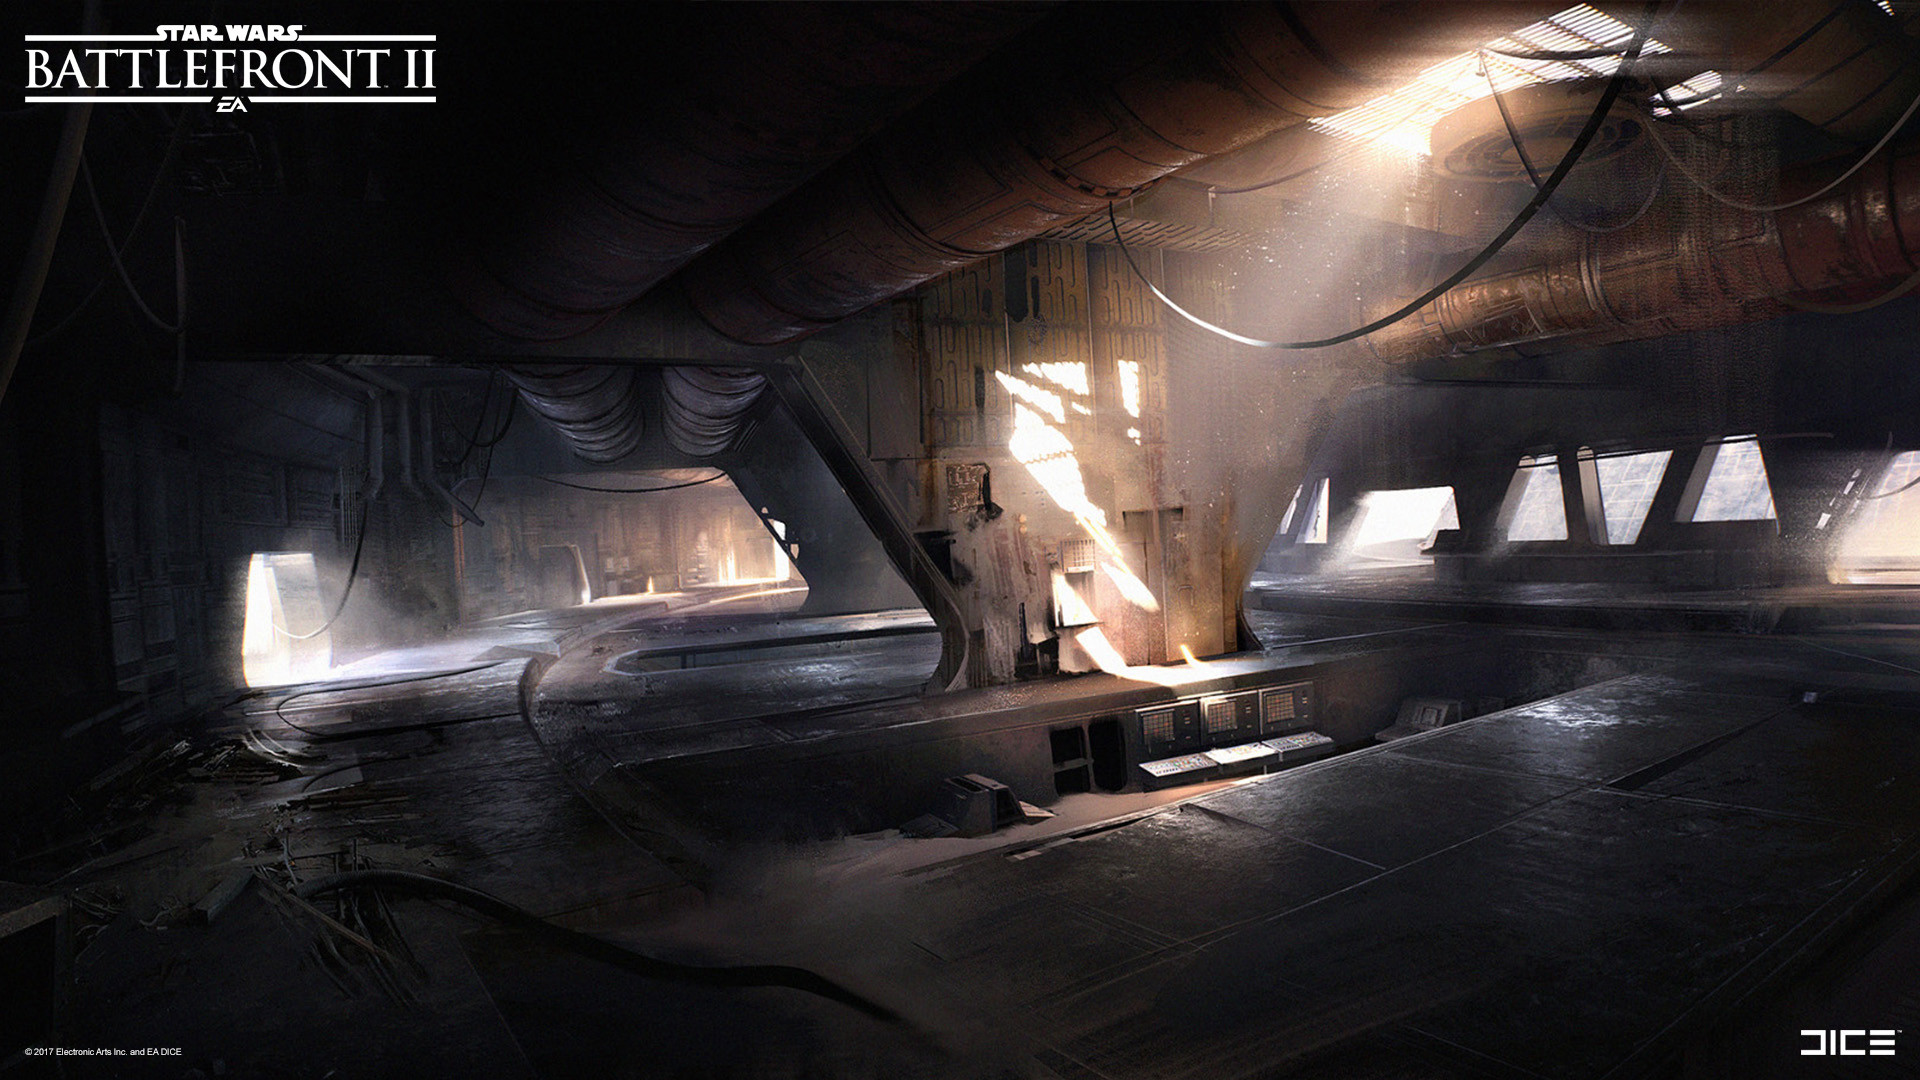 Star Wars Battlefront 2 Concept Art by Esbjörn Nord